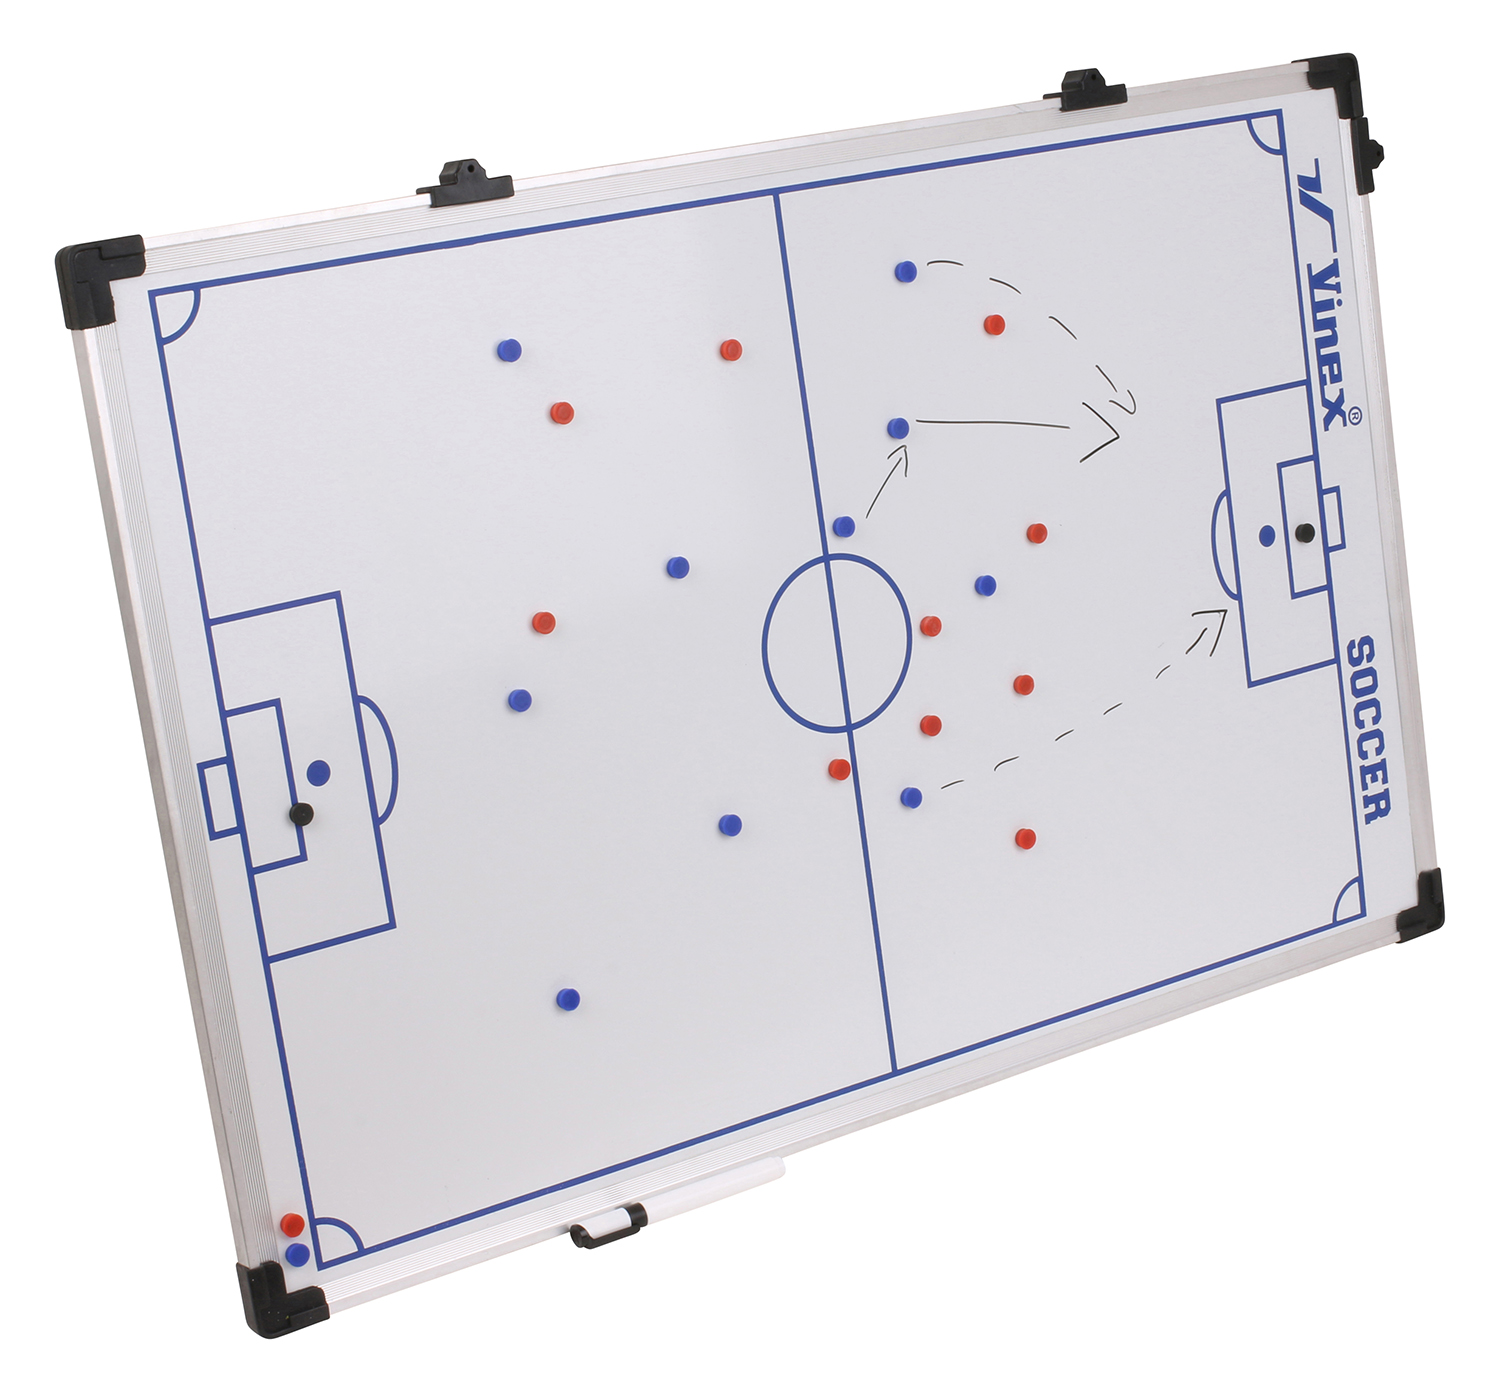 haest profi taktiktafel fussball 90 x 60 cm magnet tafel mit stift magneten ebay. Black Bedroom Furniture Sets. Home Design Ideas